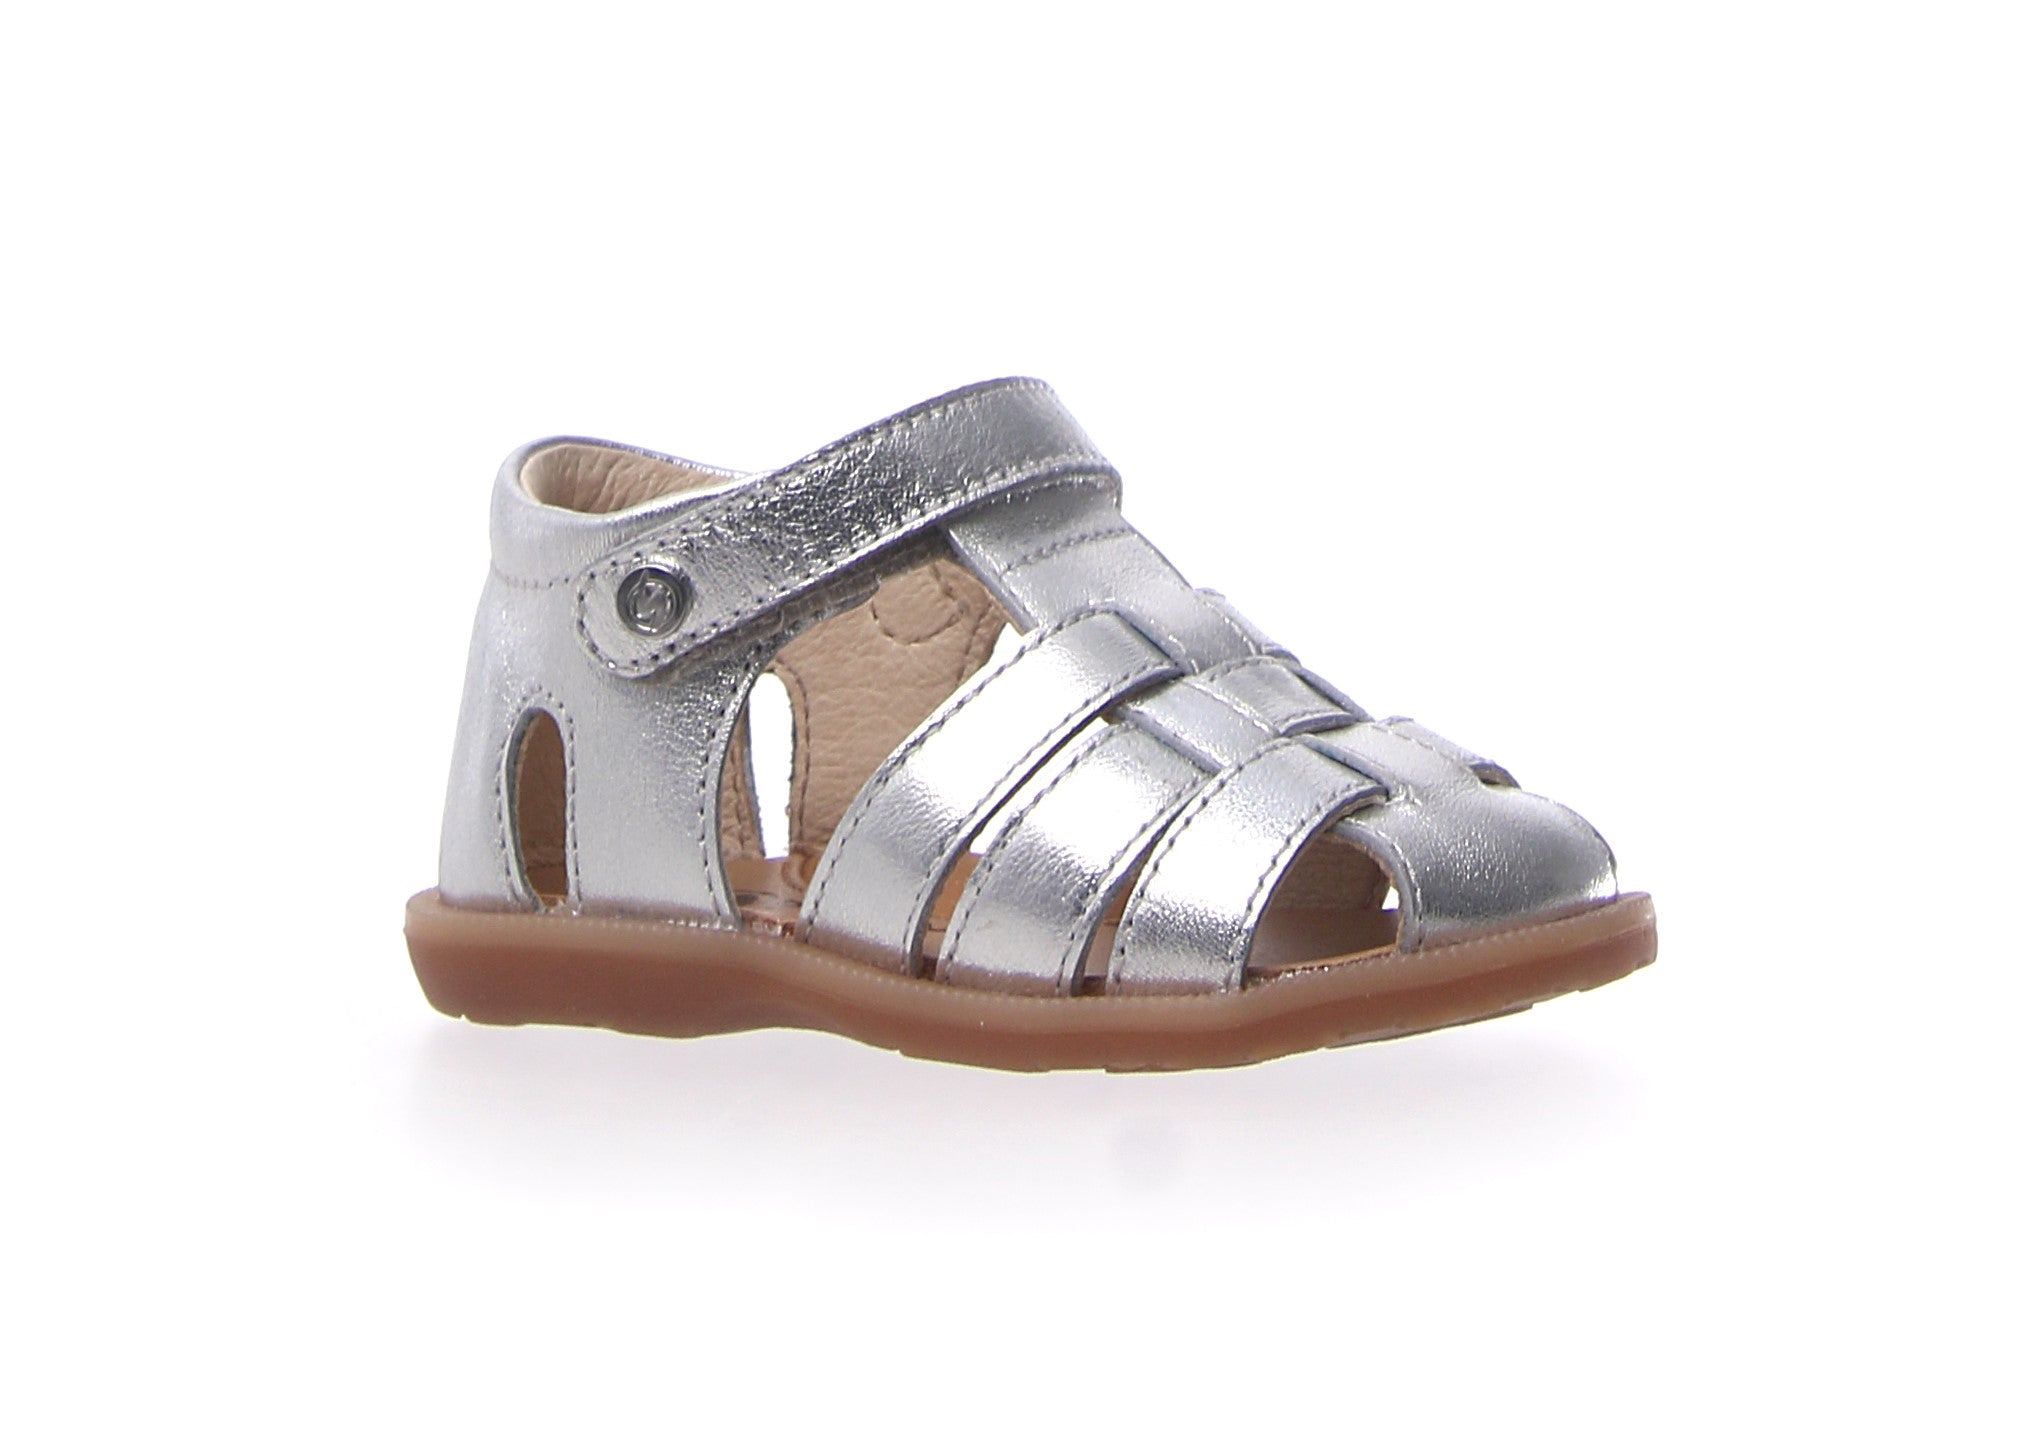 Naturino Silver Closed Sandal with Velcro Strap